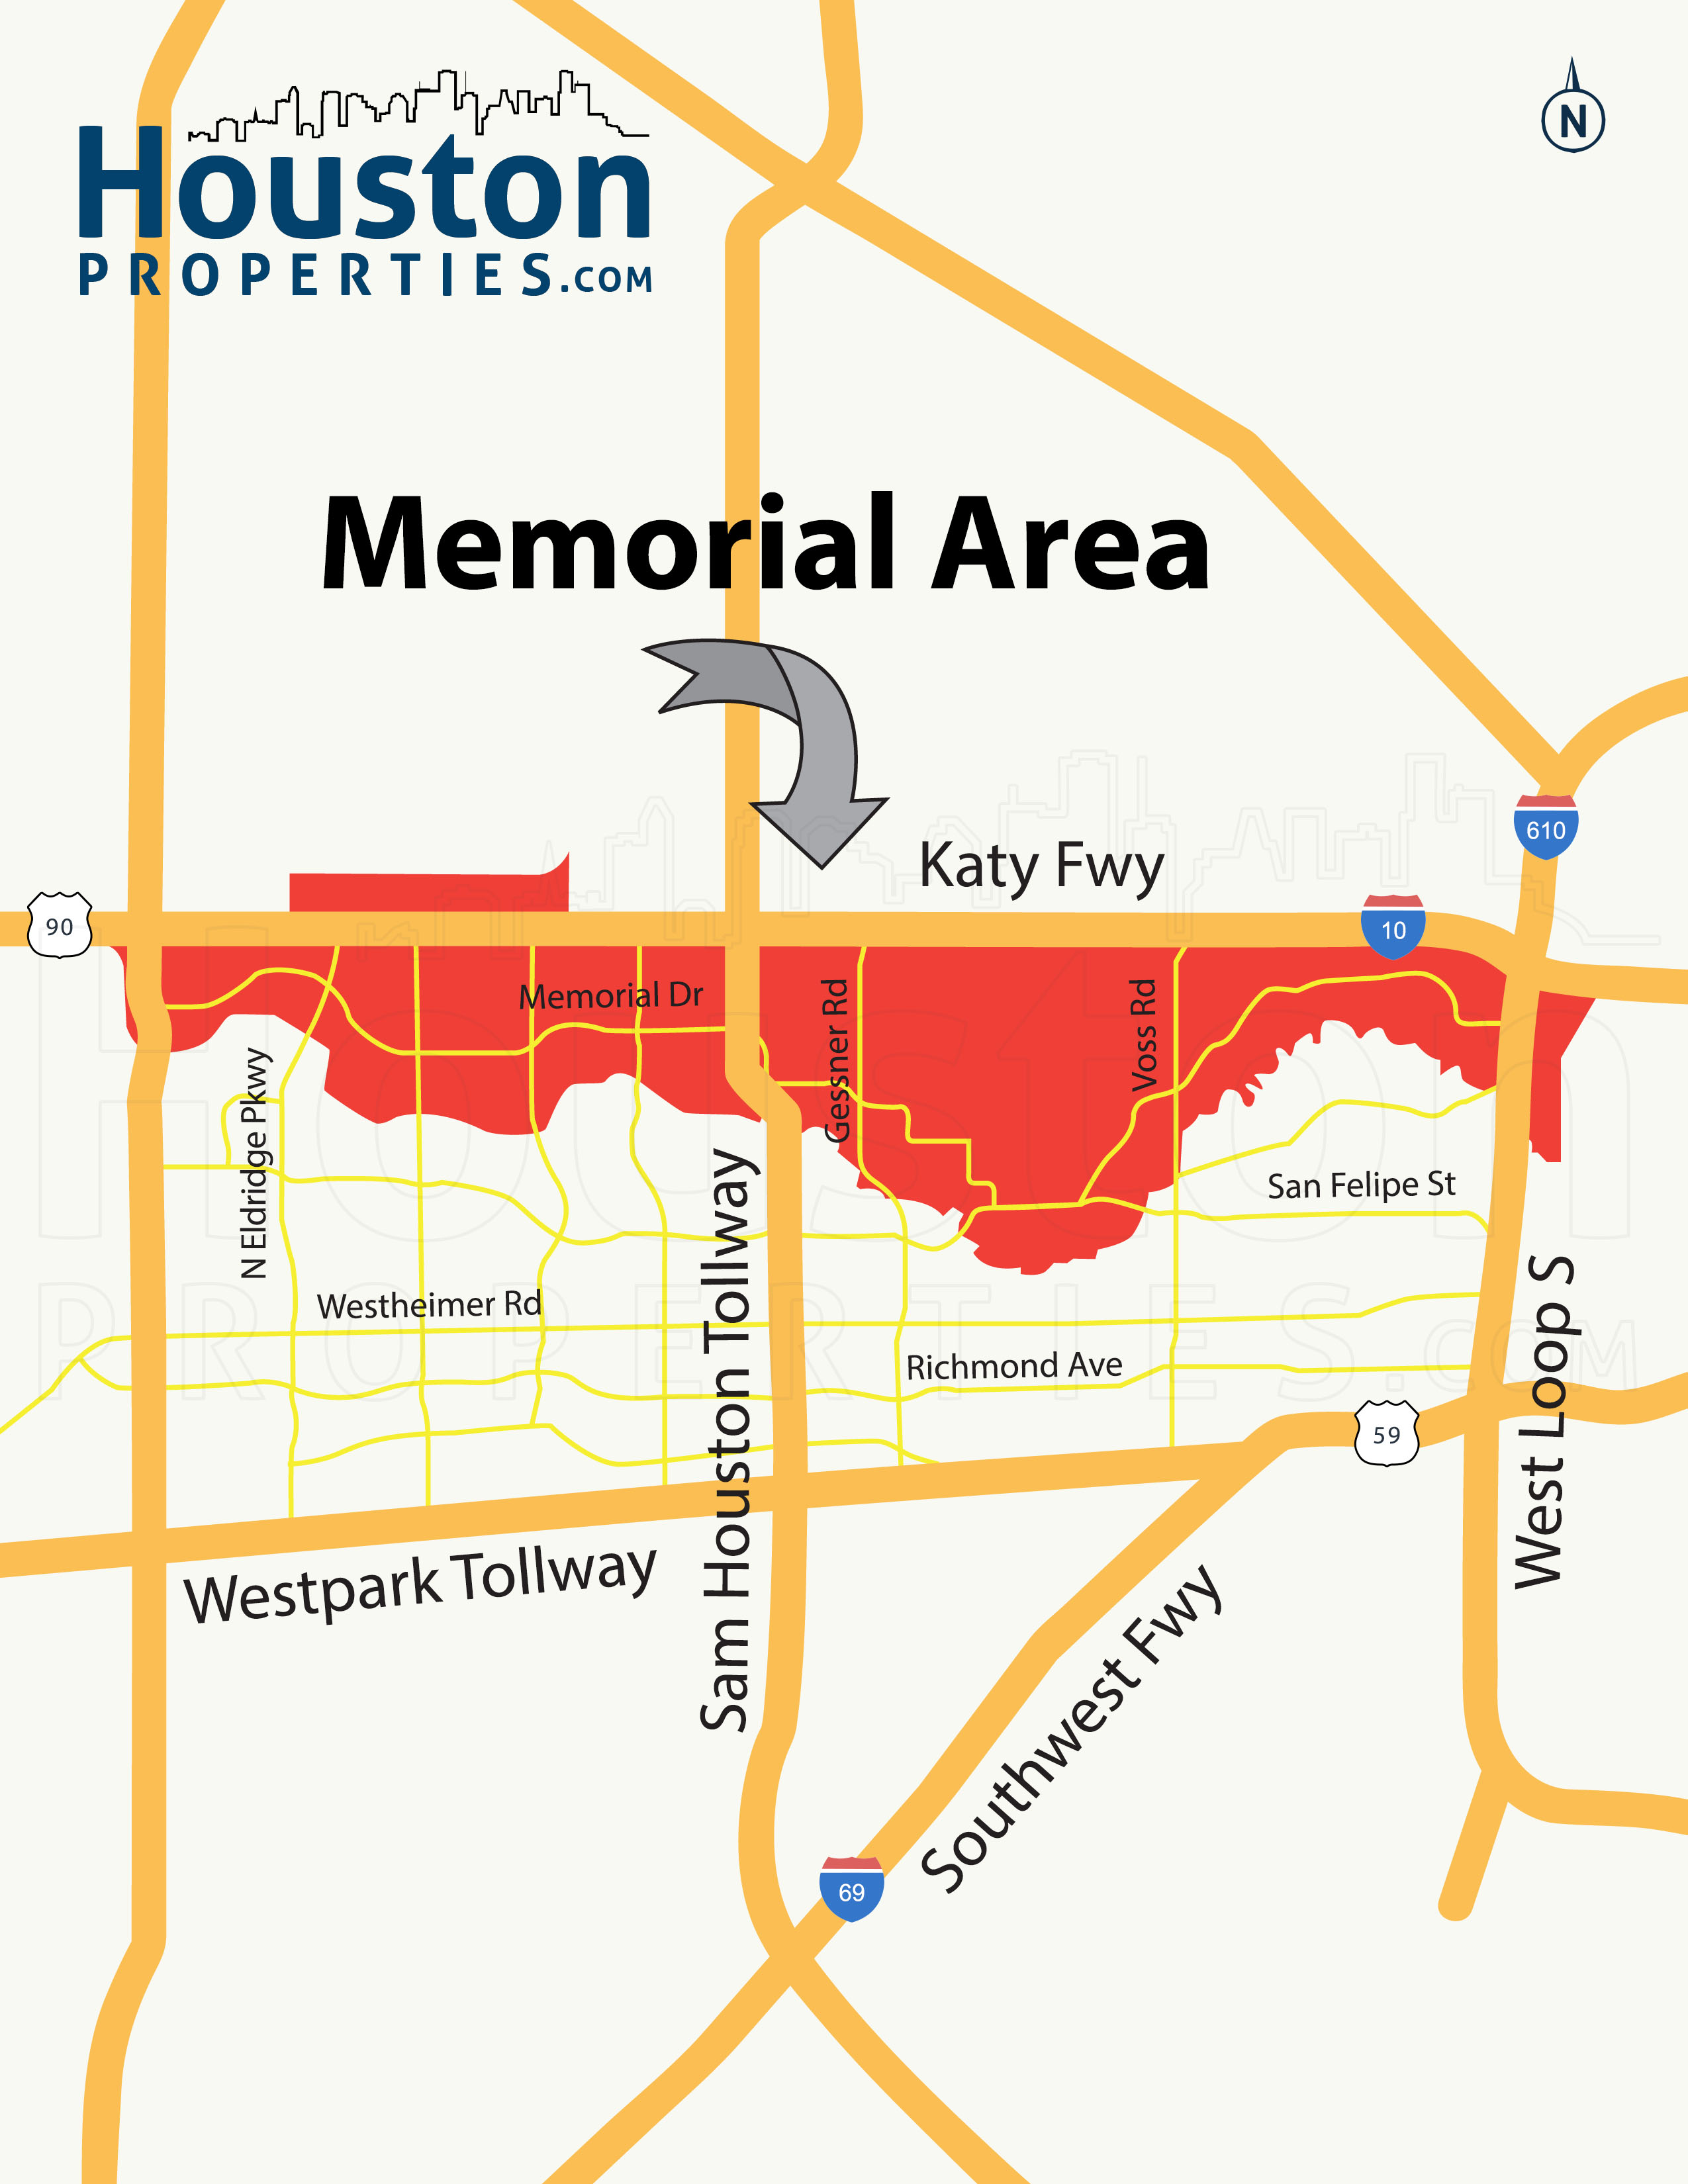 Memorial Houston Maps | Memorial Houston Neighborhood Maps